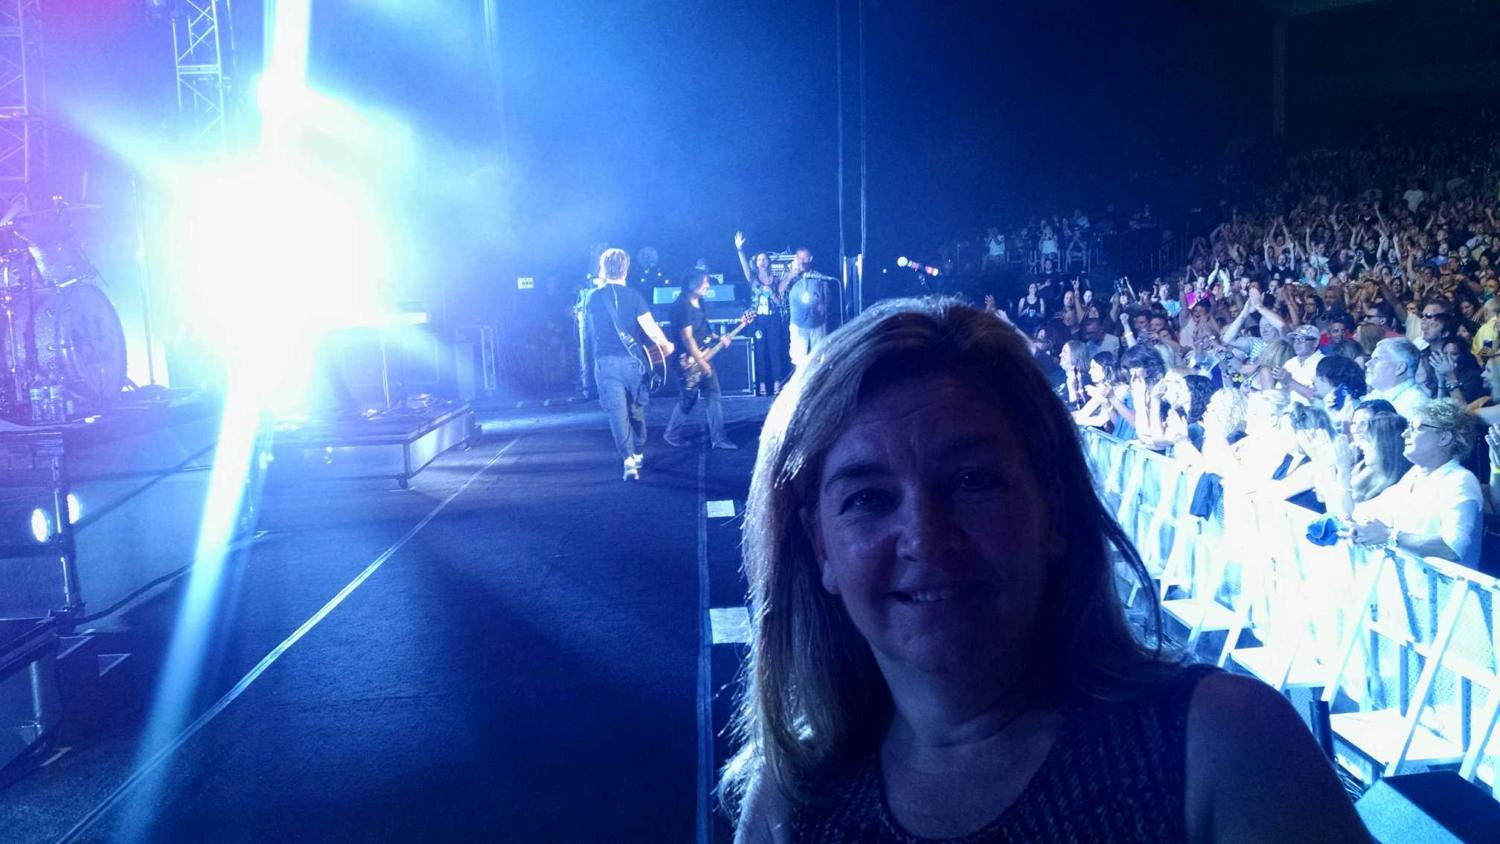 Mrs. McHardy on stage at a Goo Goo Dolls concert.